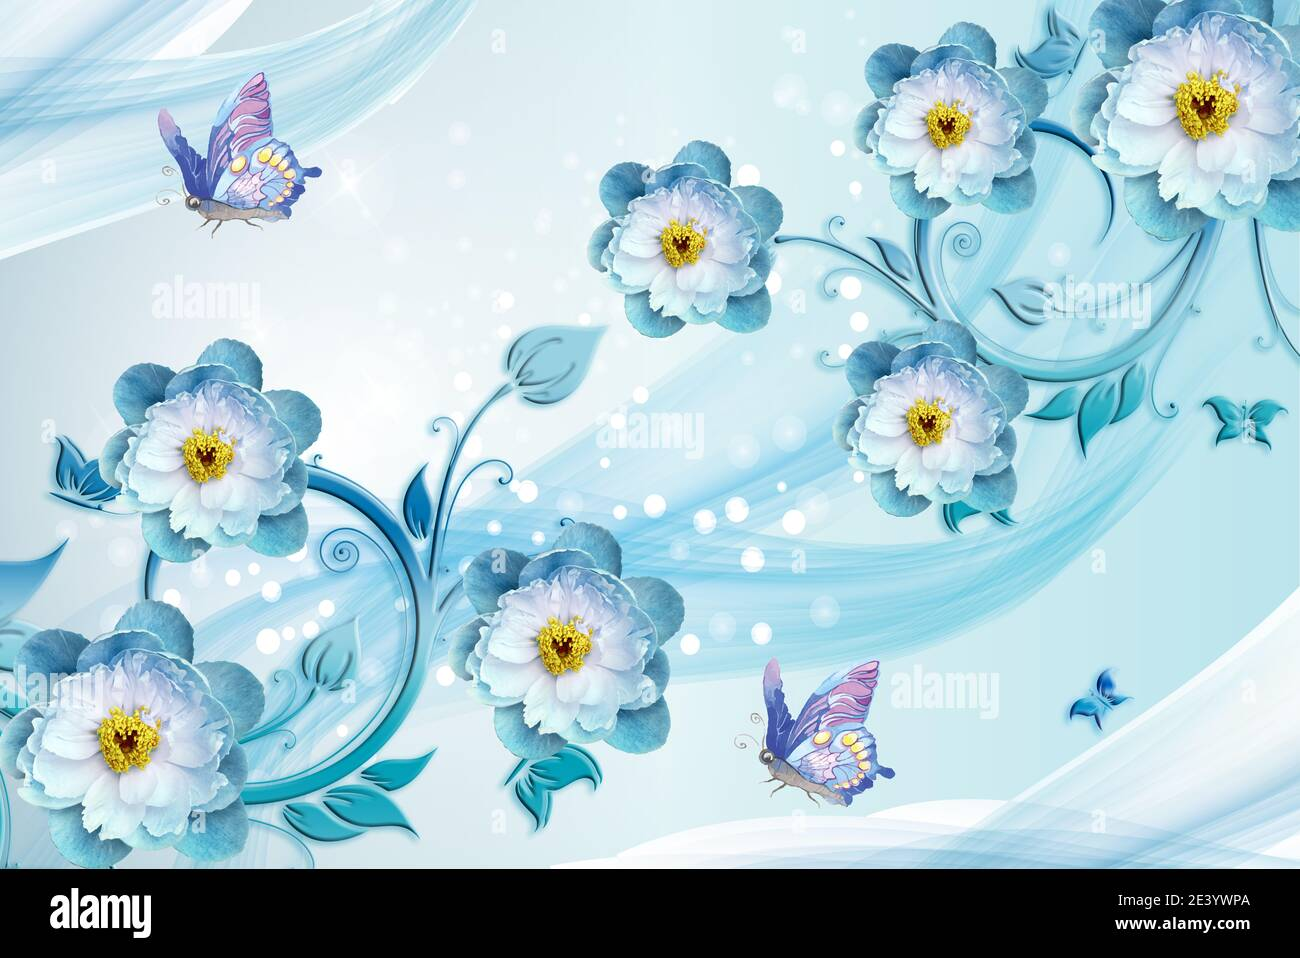 3d Wallpaper Home High Resolution Stock Photography And Images Alamy